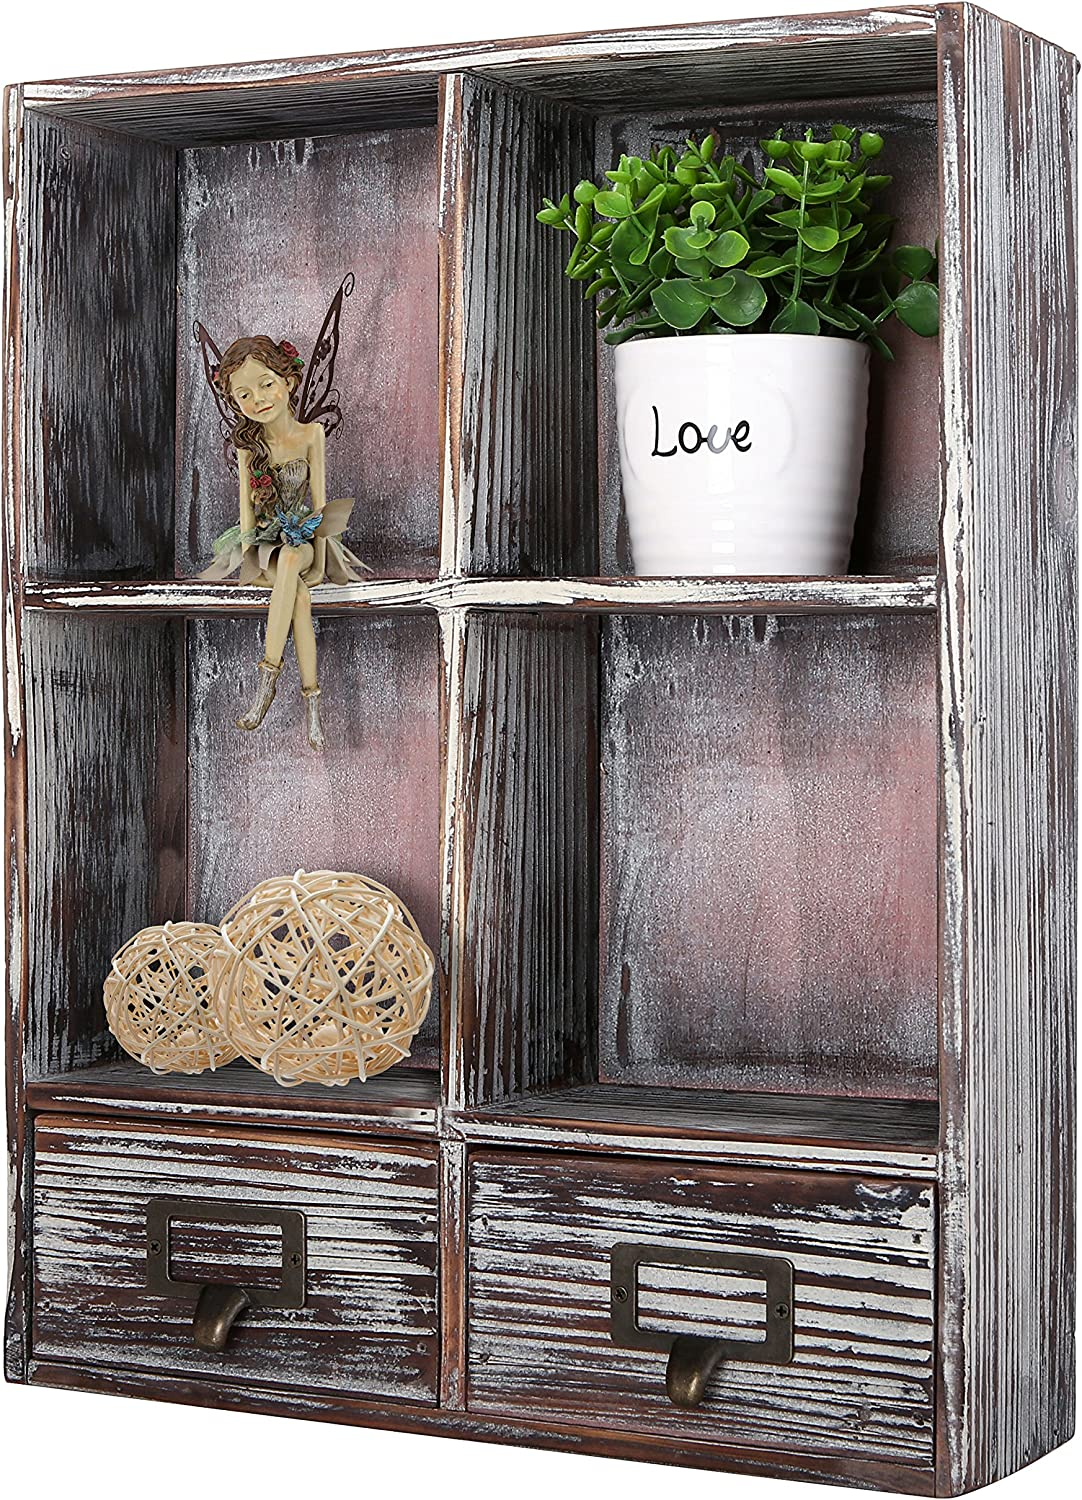 Amazon Com Mygift Rustic Torched Wood Wall Mounted Shadow Box With 4 Cubby Shelving And 2 Drawers With Label Holders